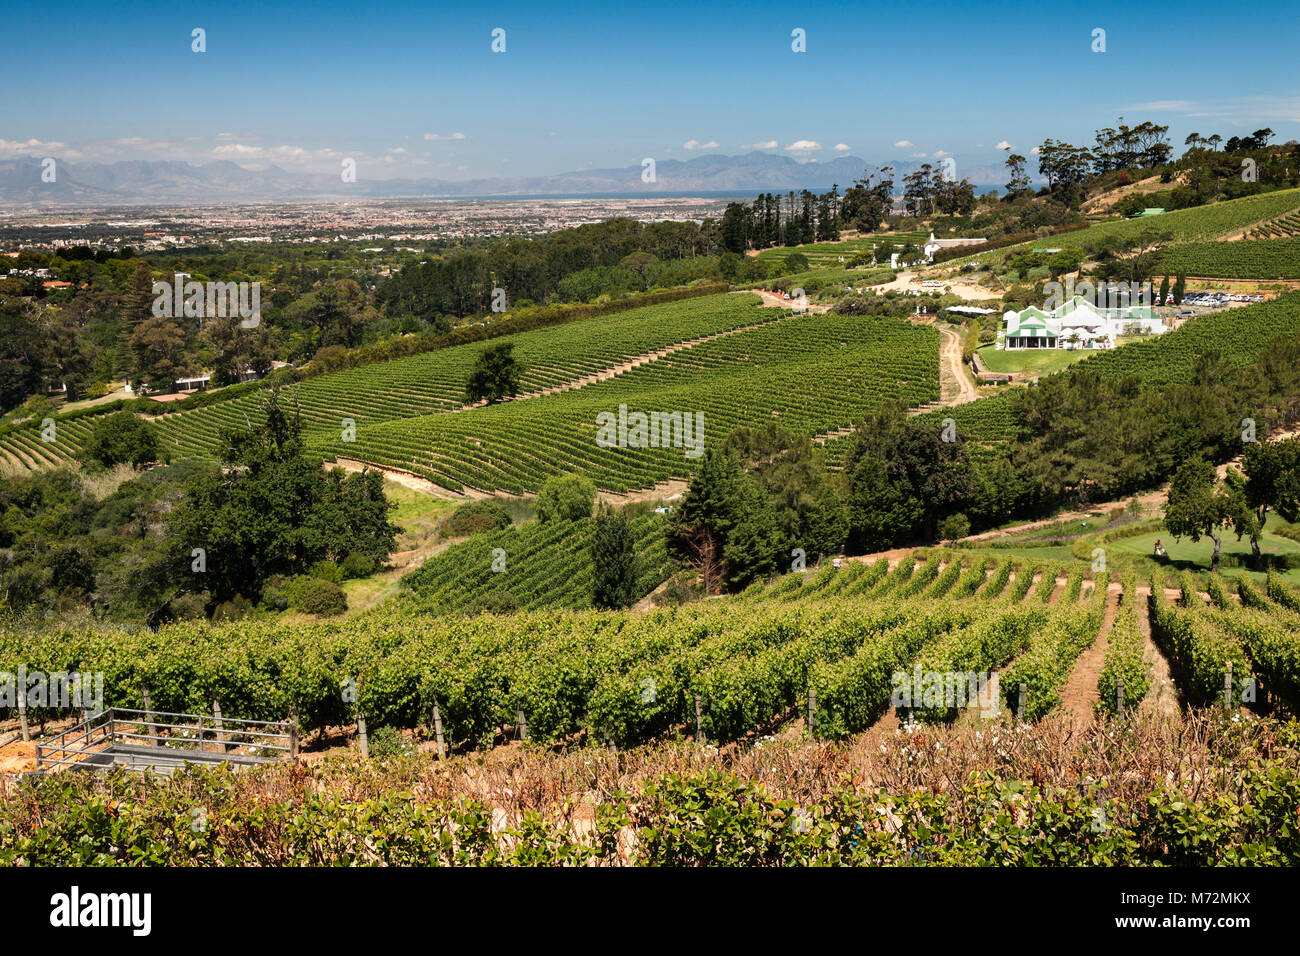 View across the Constantia valley from the Beau Constantia wine estate in Cape Town. - Stock Image